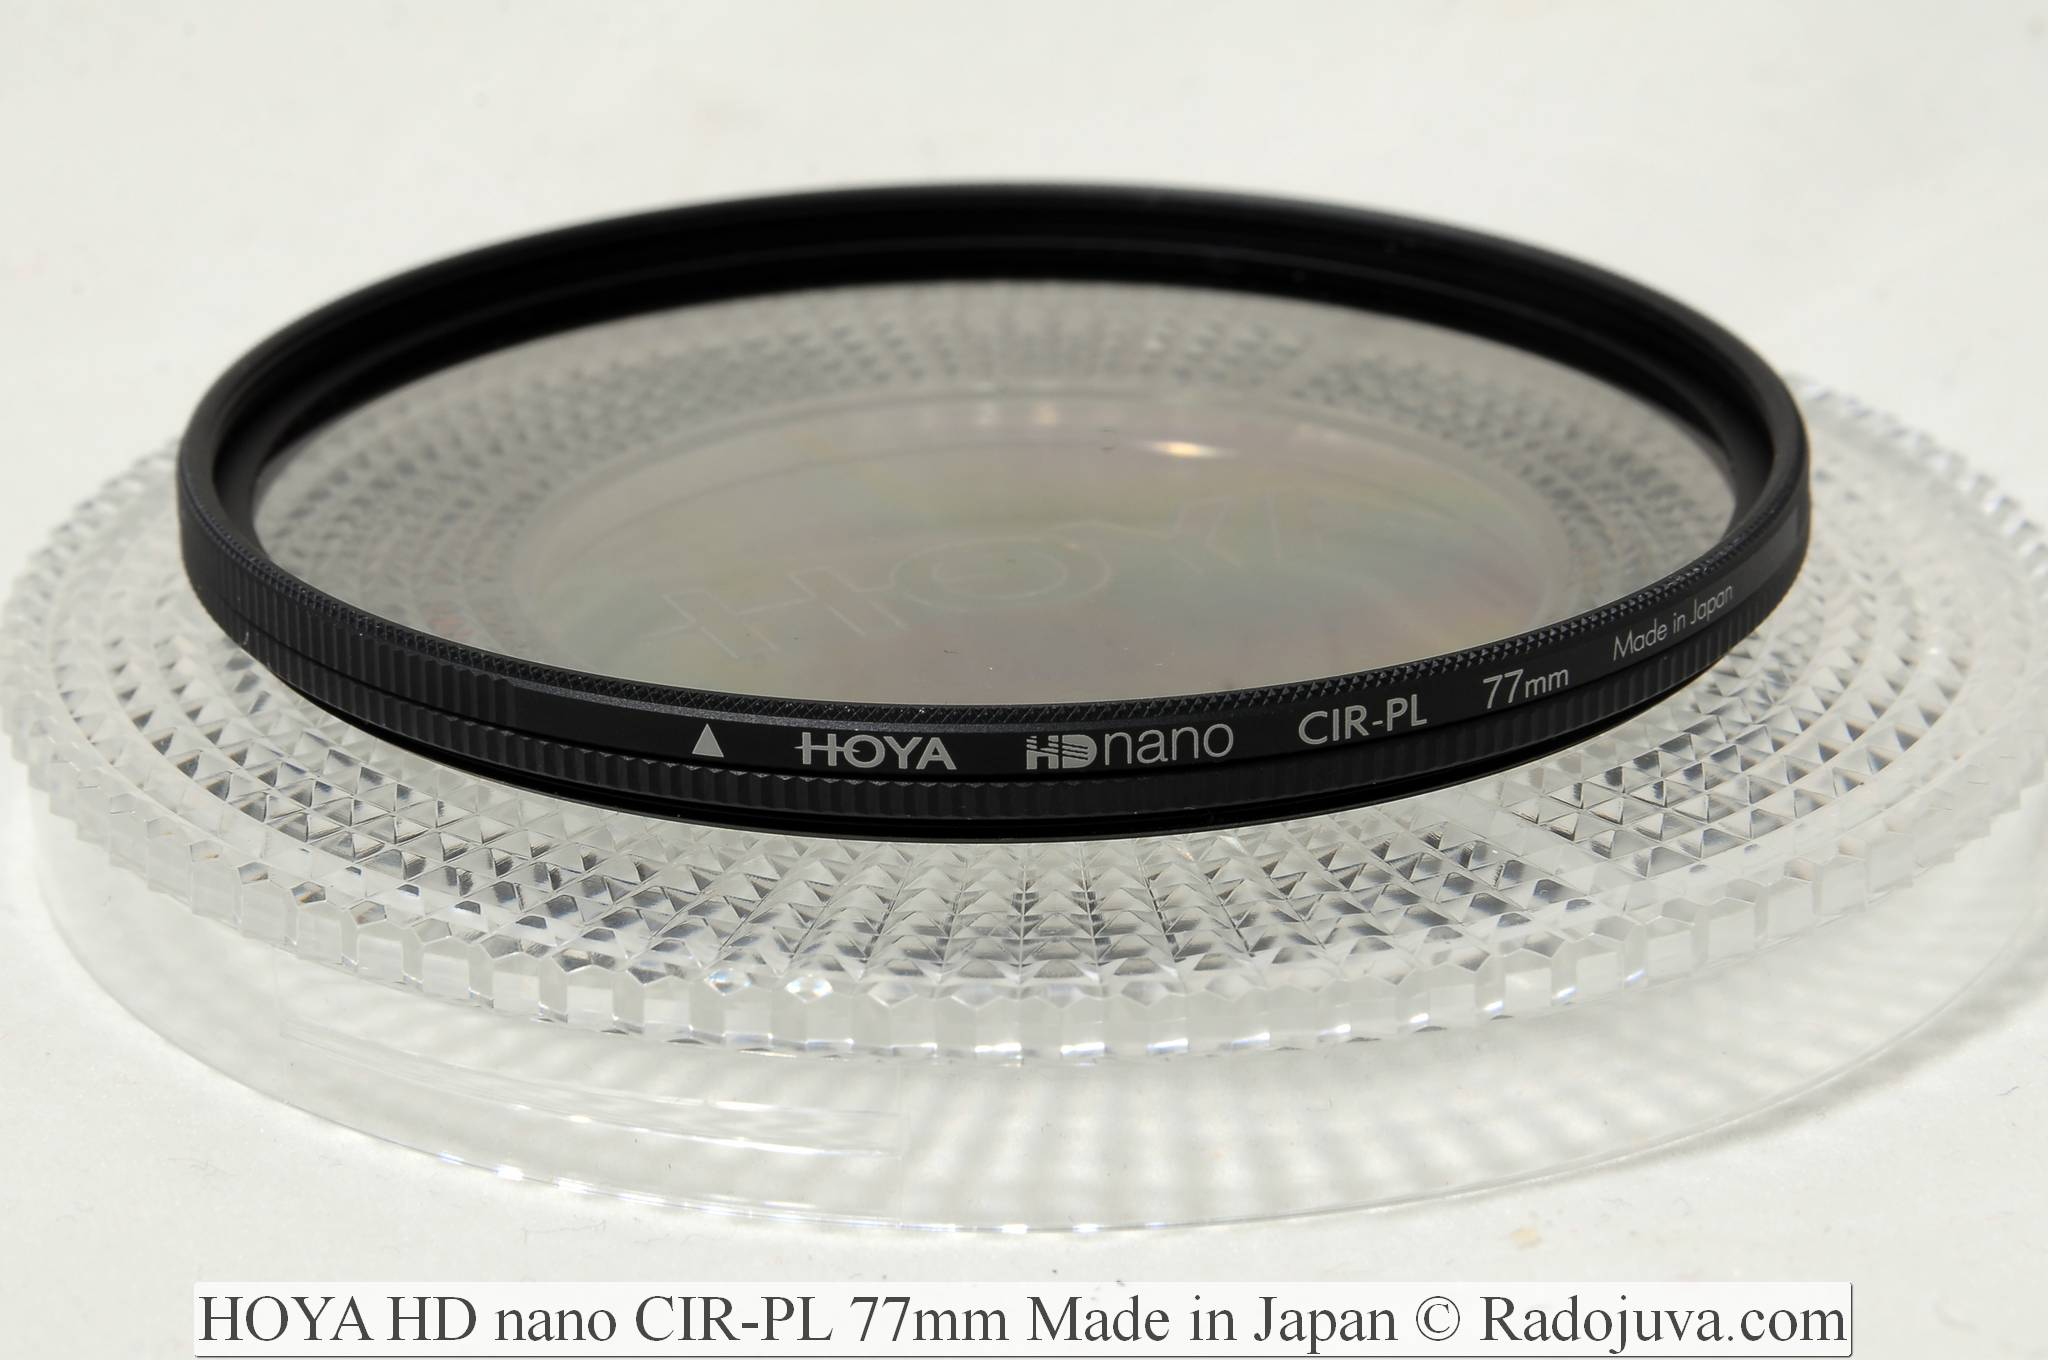 HOYA HD nano CIR-PL 77mm Made in Japan